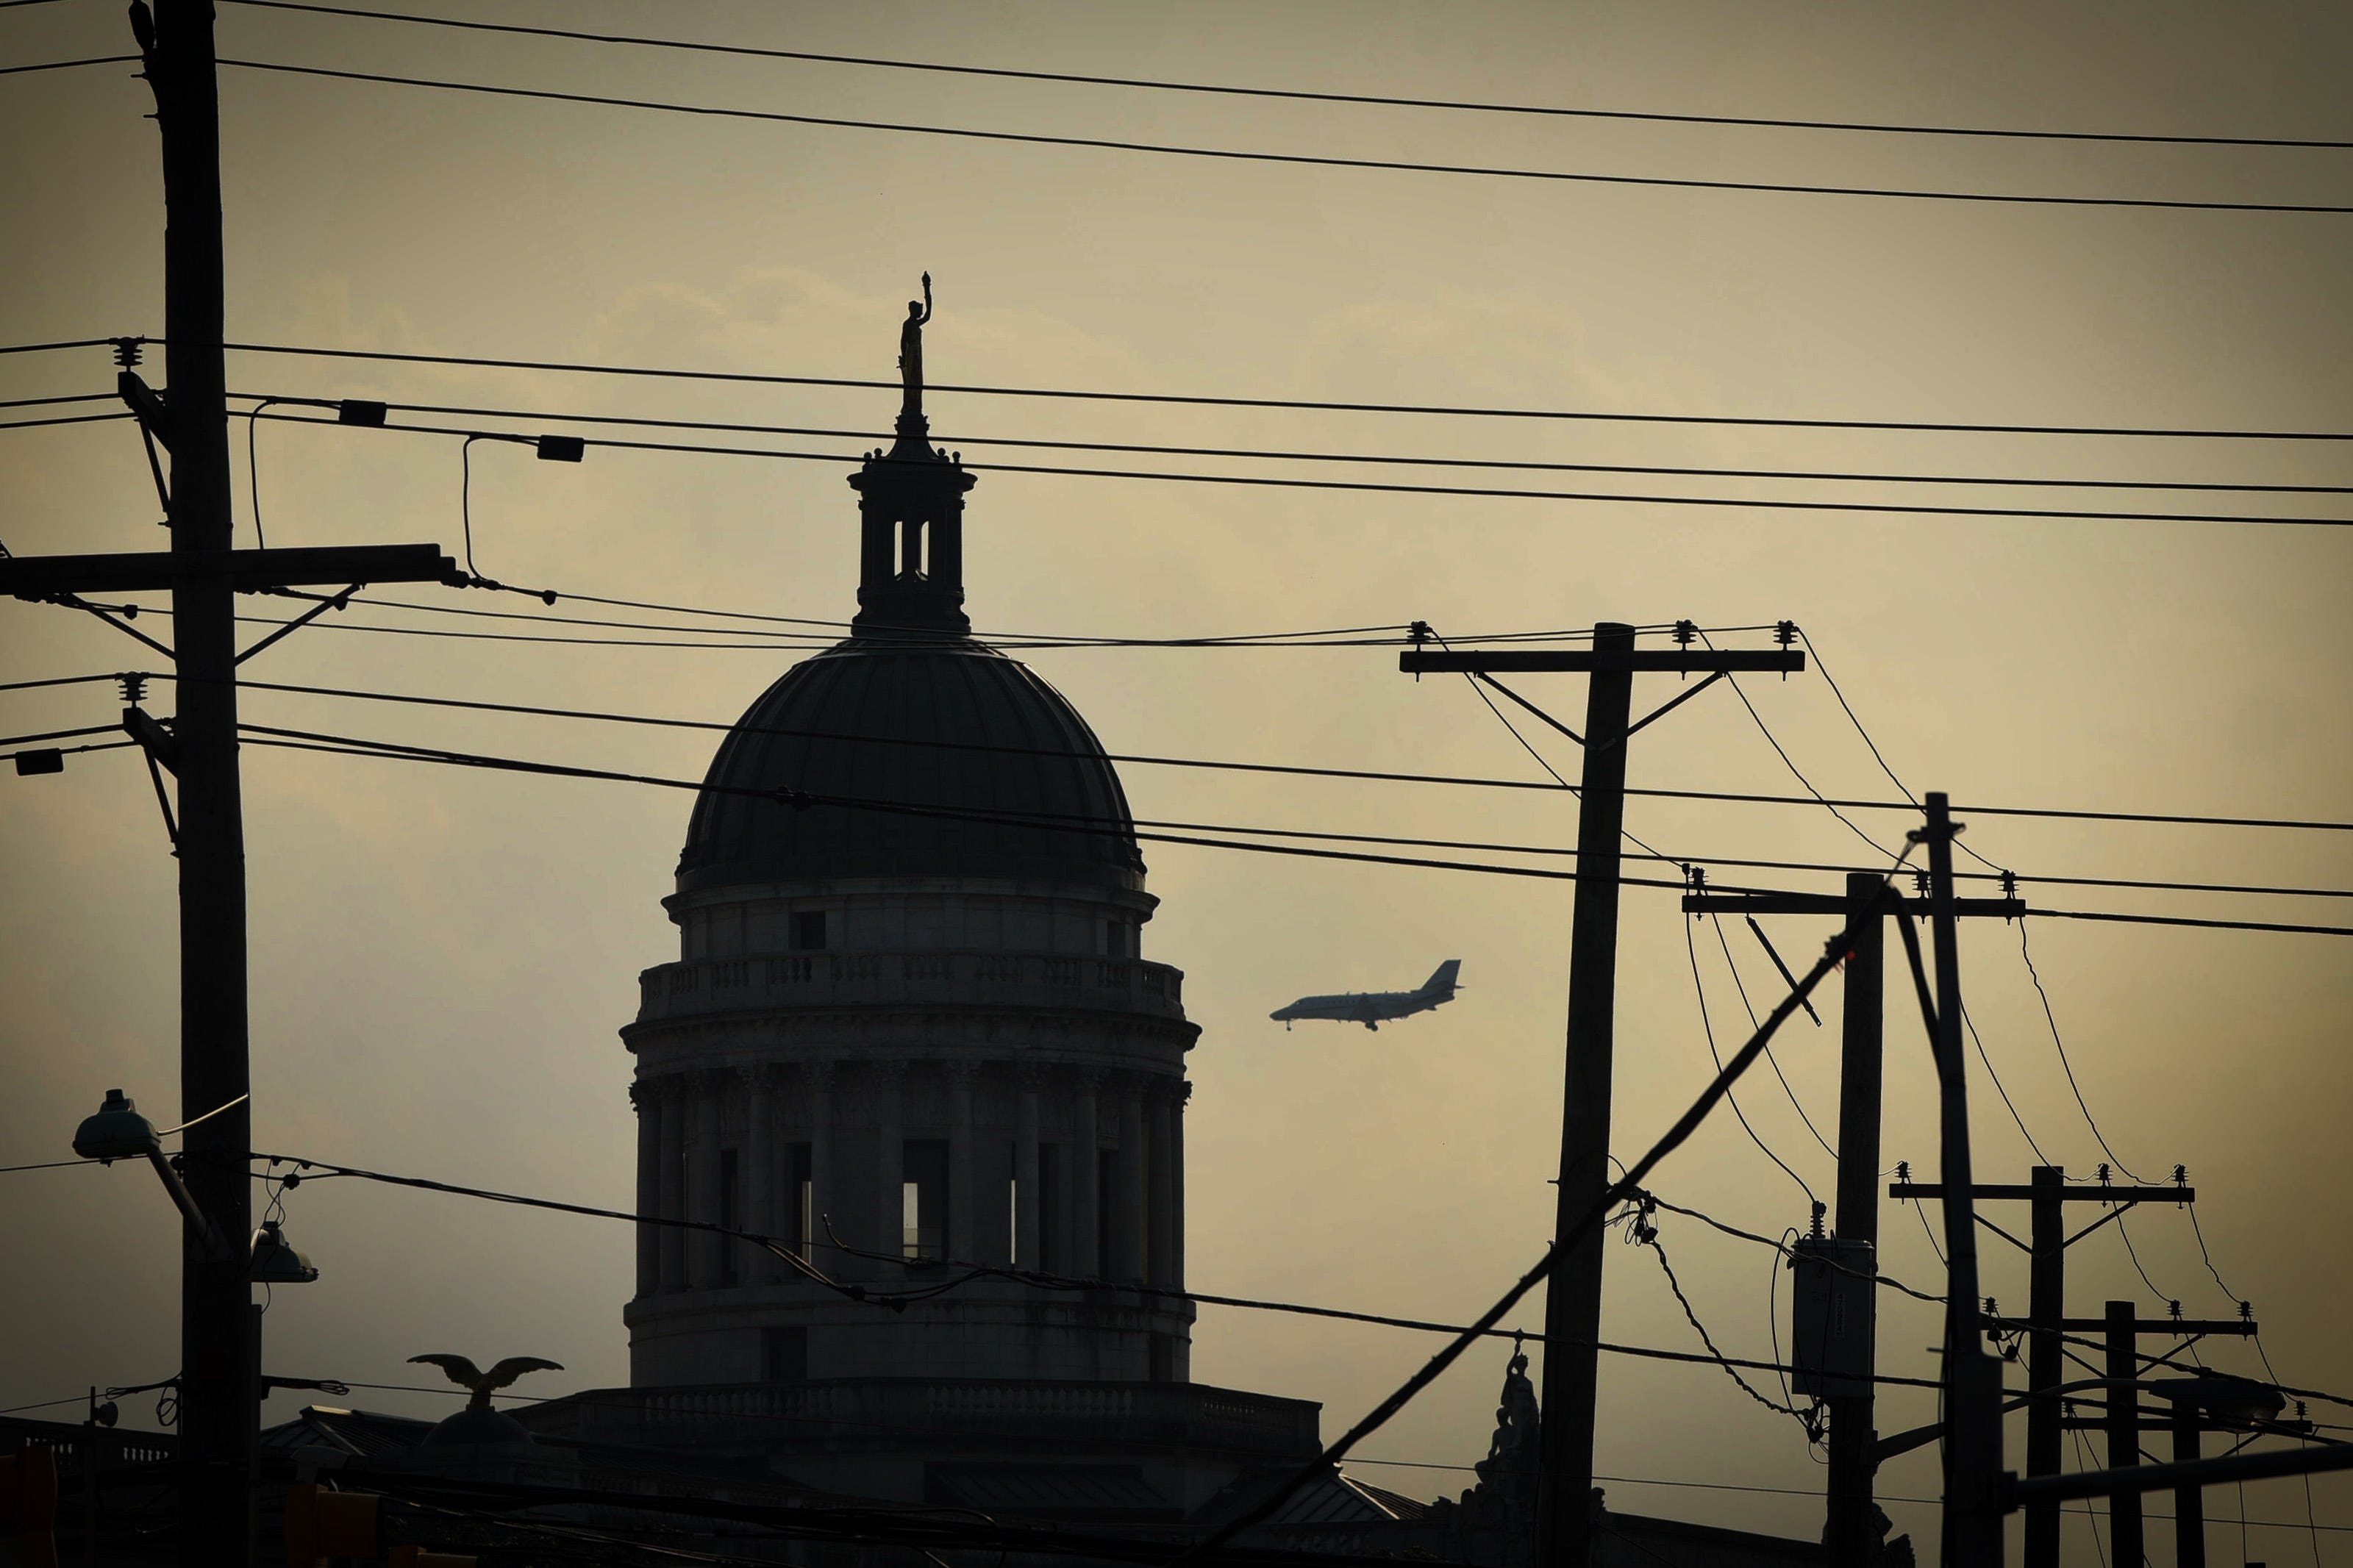 The dome atop the Bergen County Courthouse in Hackensack stands out against the late afternoon overcast sky as an airplane is seen in the sky on 08/04/21. The Courthouse was designed by J. Riely Gordon, and was constructed between 1909 and 1912.